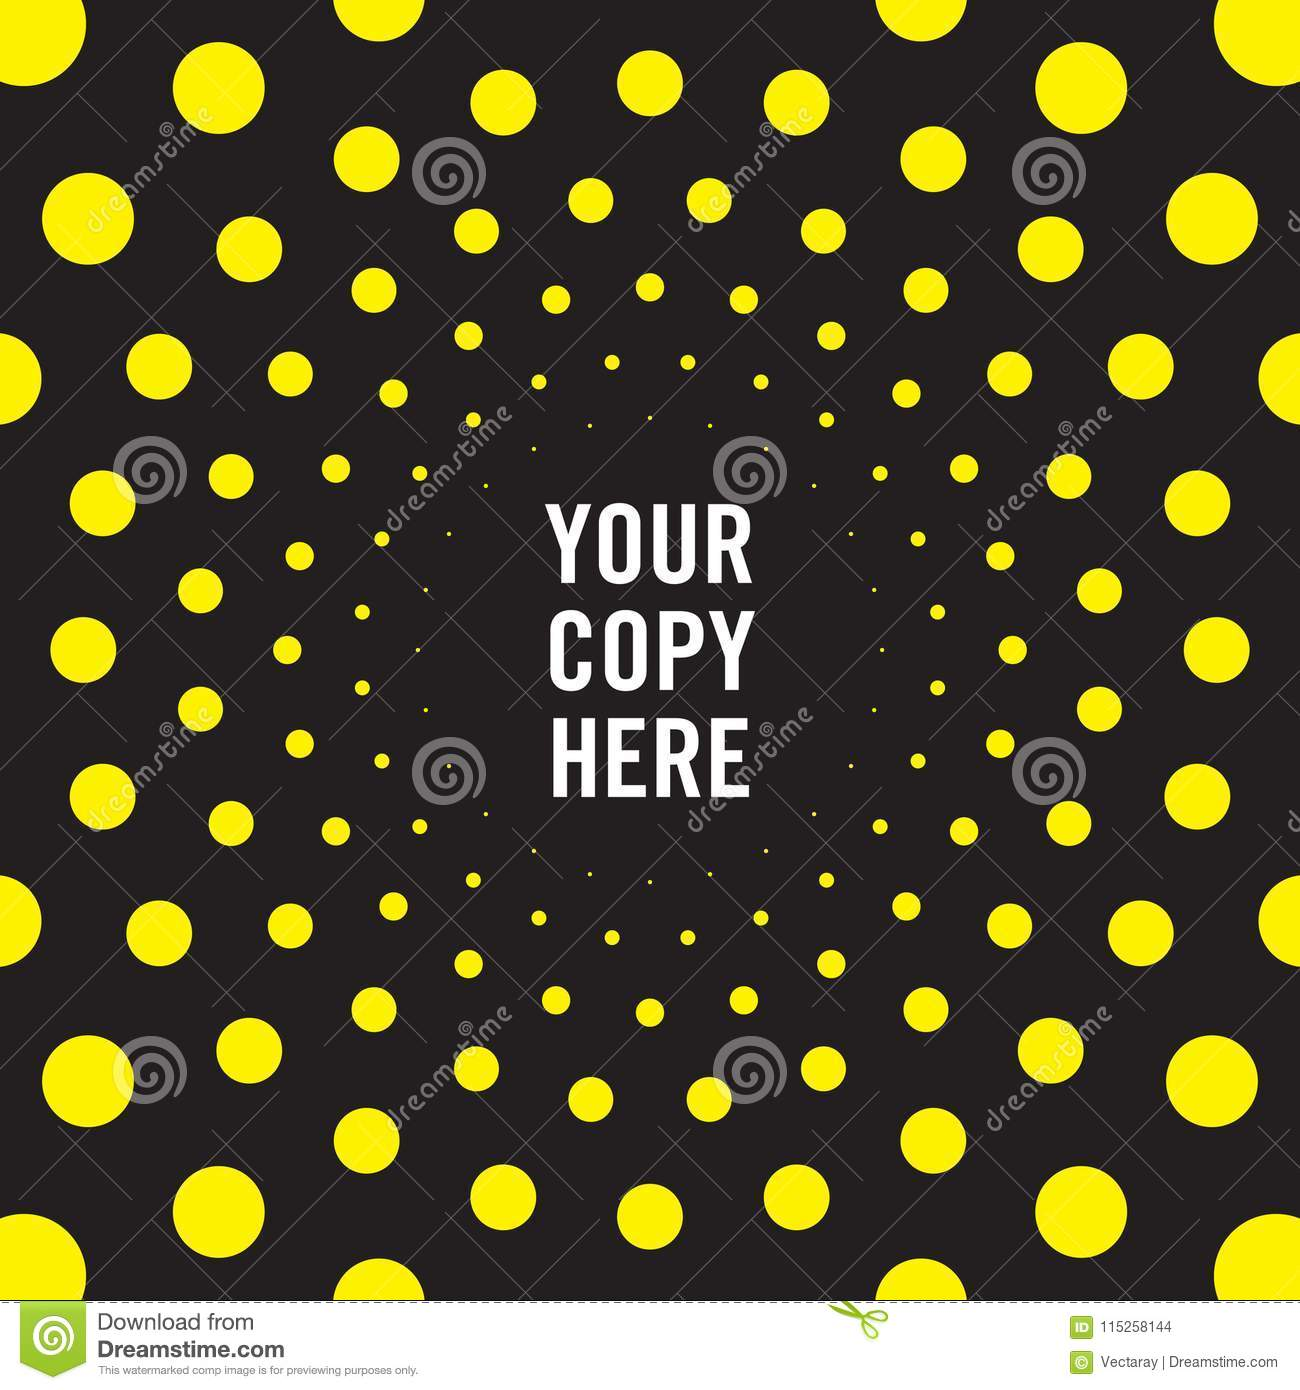 Radiating Dot Pattern Background In Black And Yellow Stock Vector